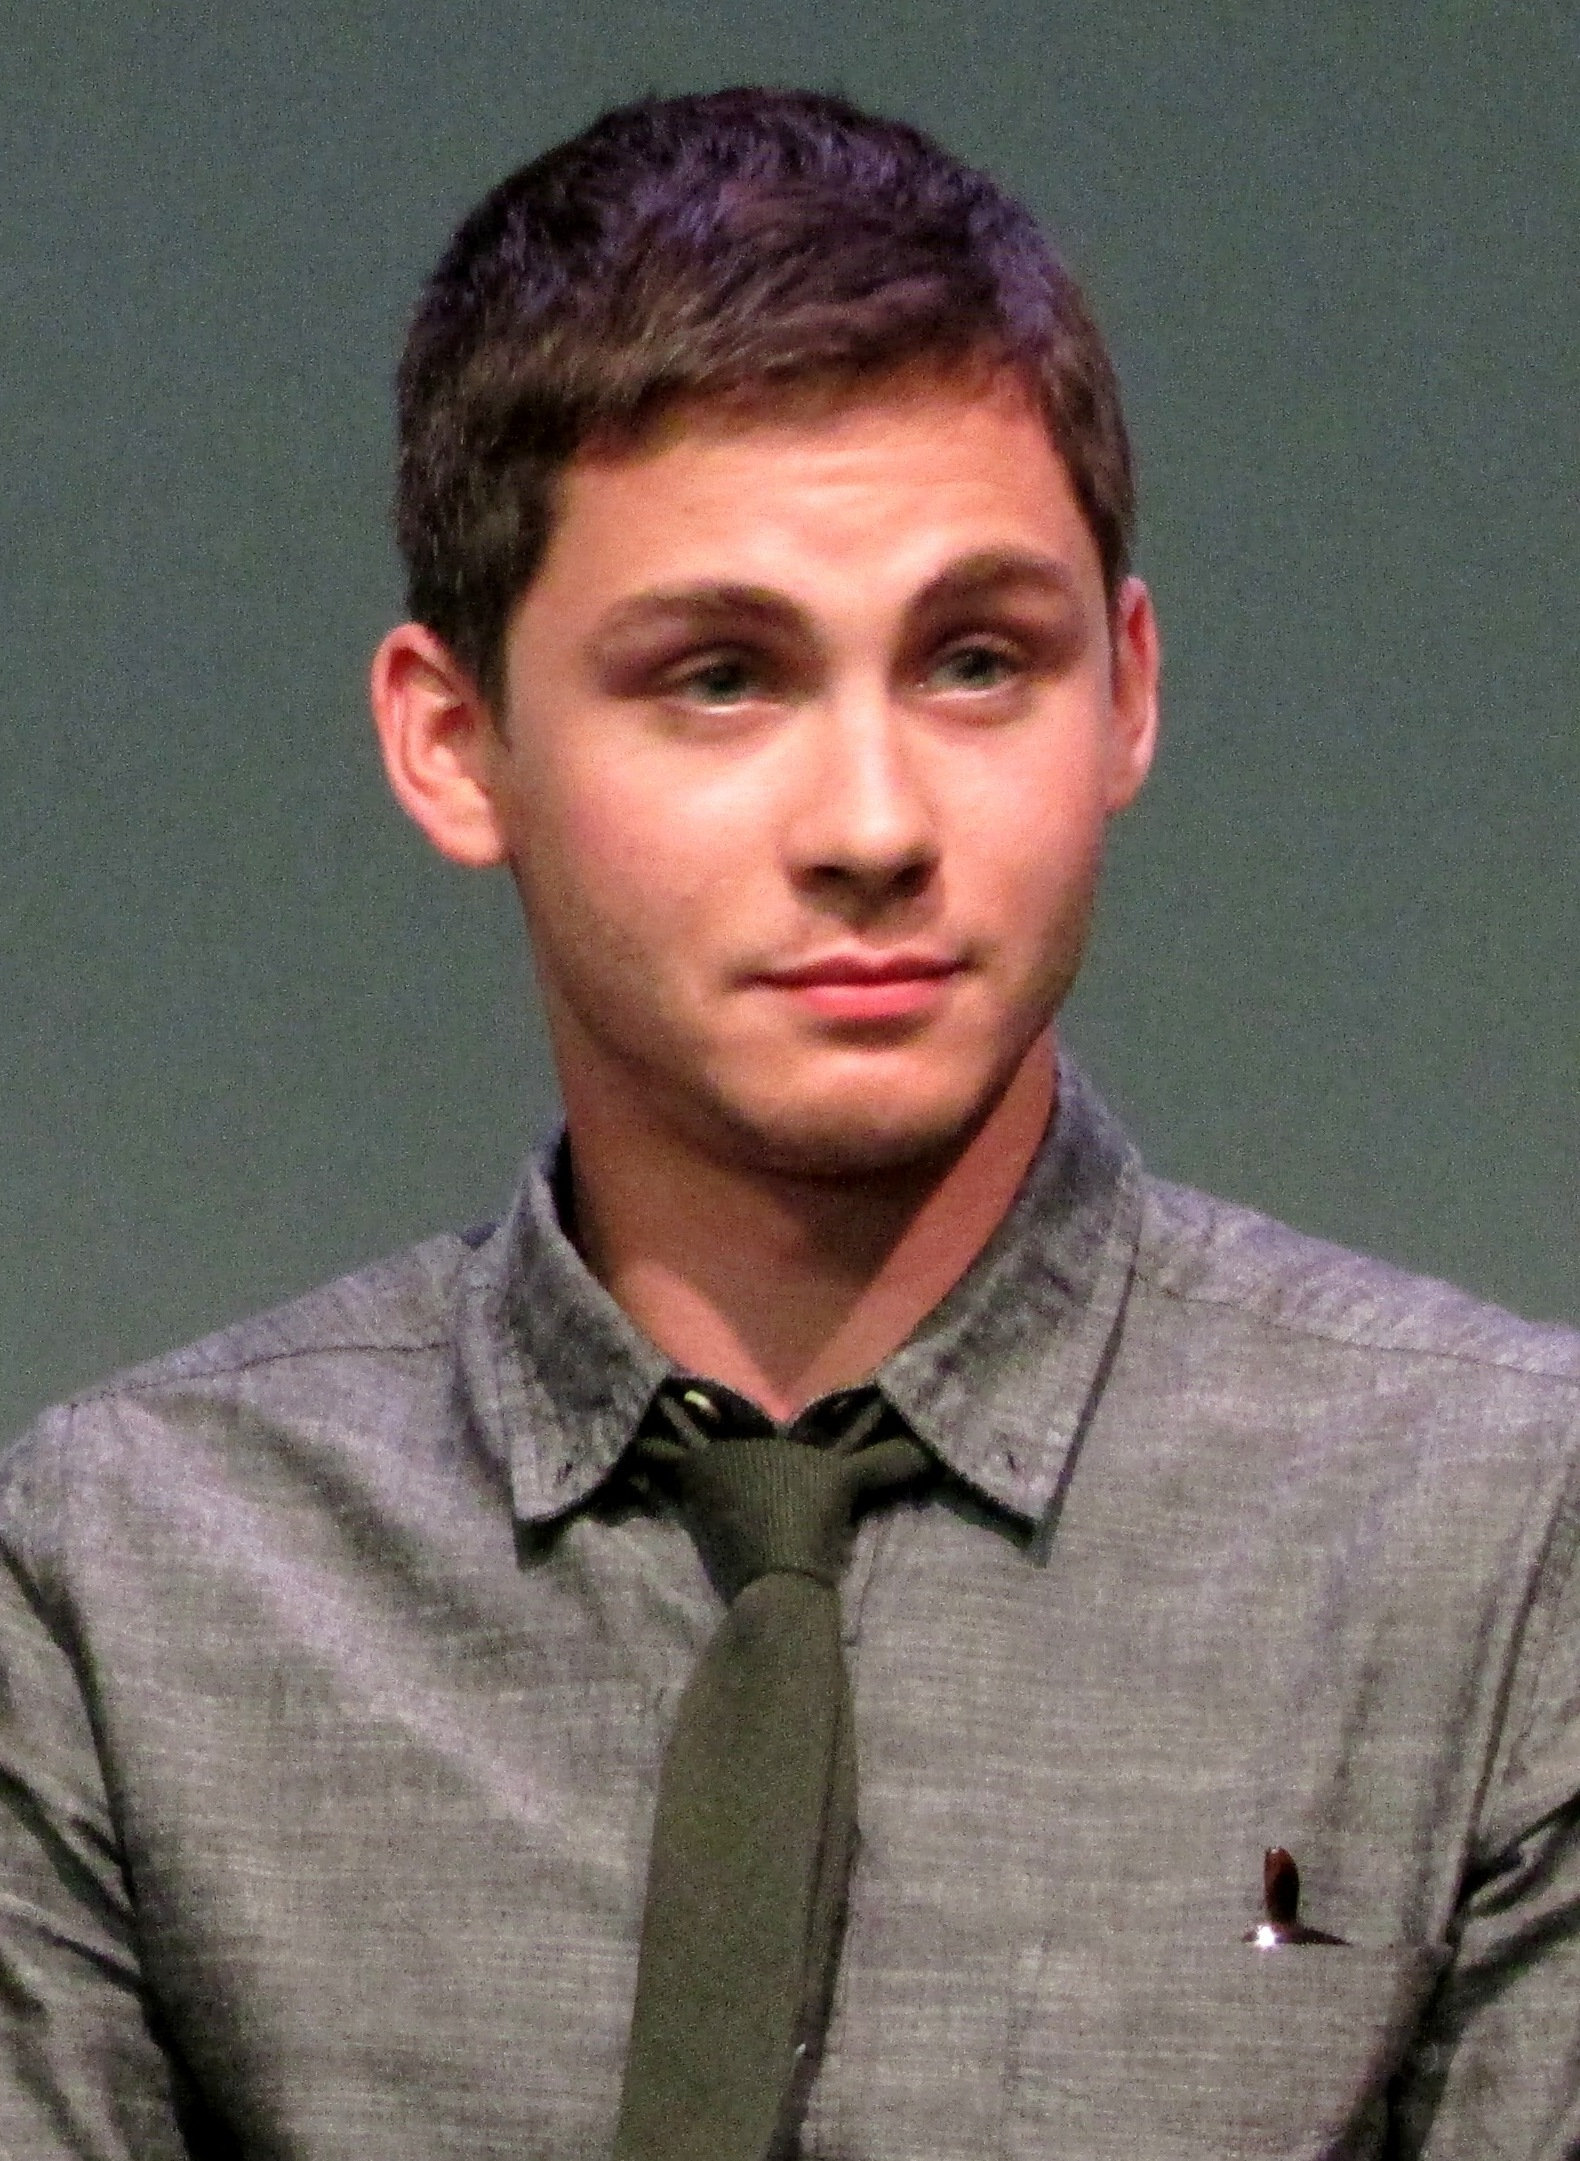 Logan lerman wikipedia